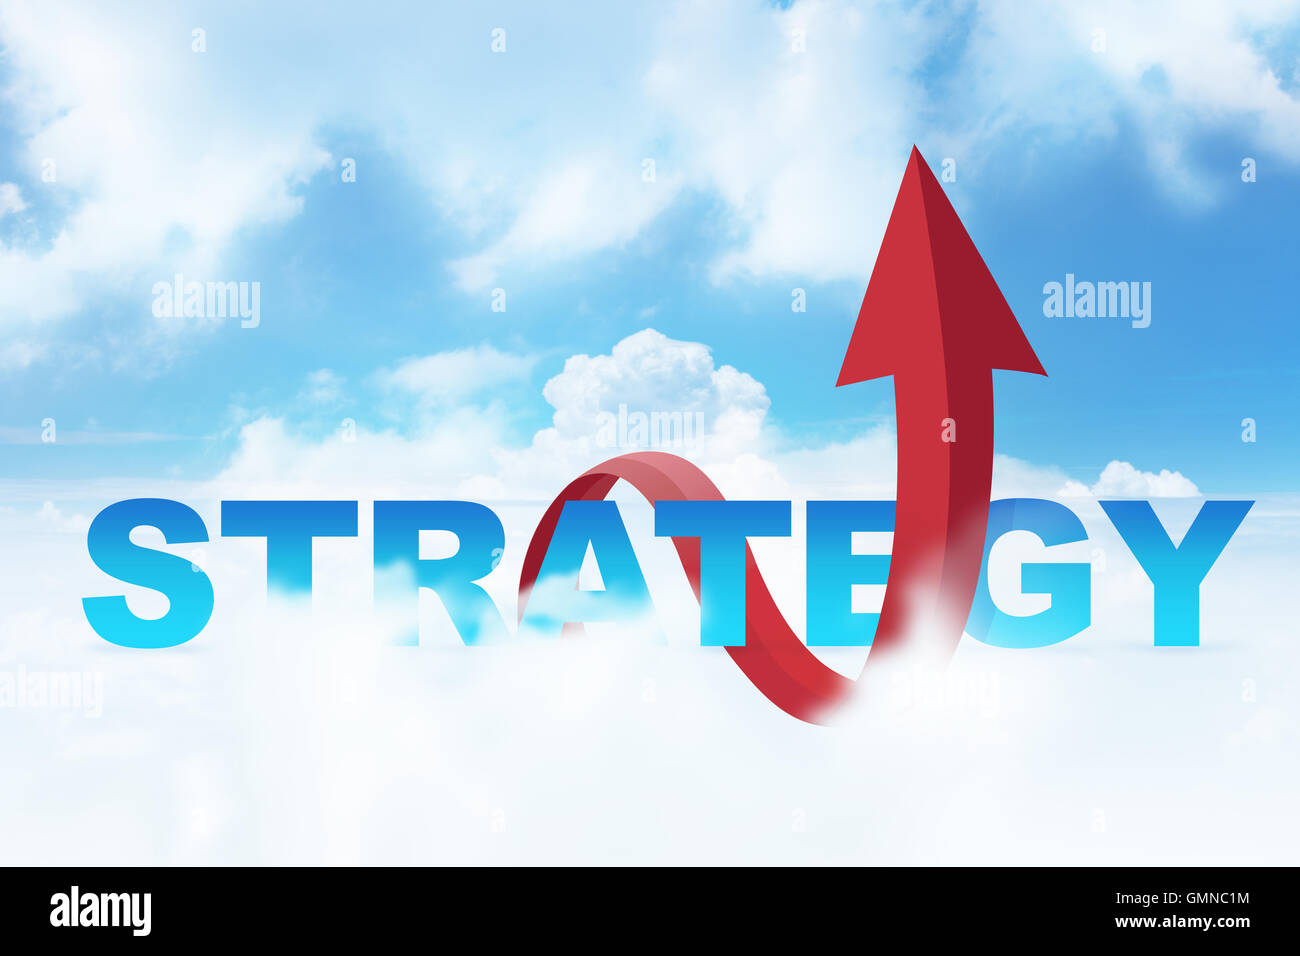 Strategy Word with Arrow in Cloudy Blue Sky - Stock Image